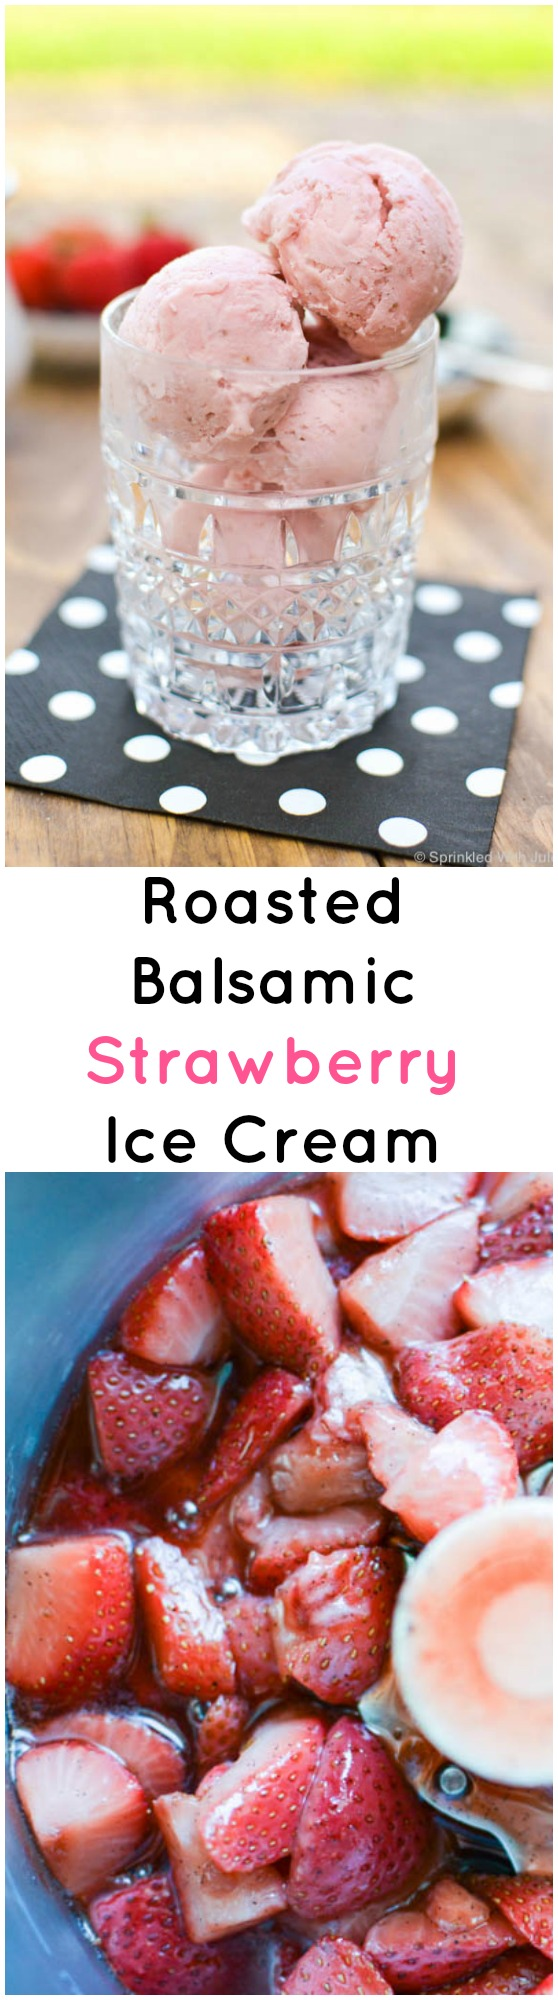 strawberry ice cream made with roasted balsamic strawberries